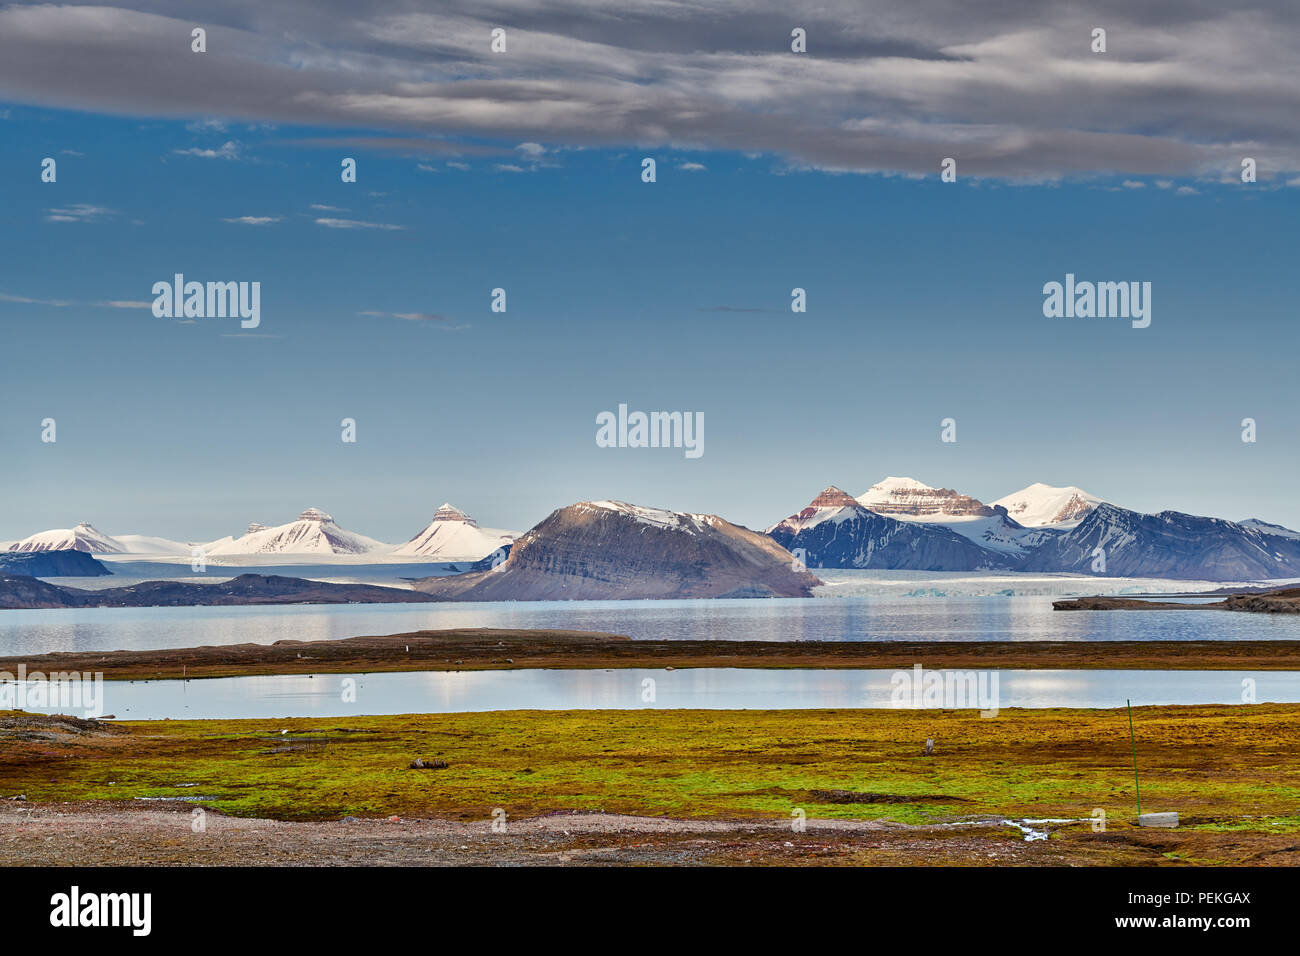 view from the Northernmost civilian and functional settlement Ny-Ålesund on the landscape with the three crones, Svalbard or Spitsbergen, Europe - Stock Image